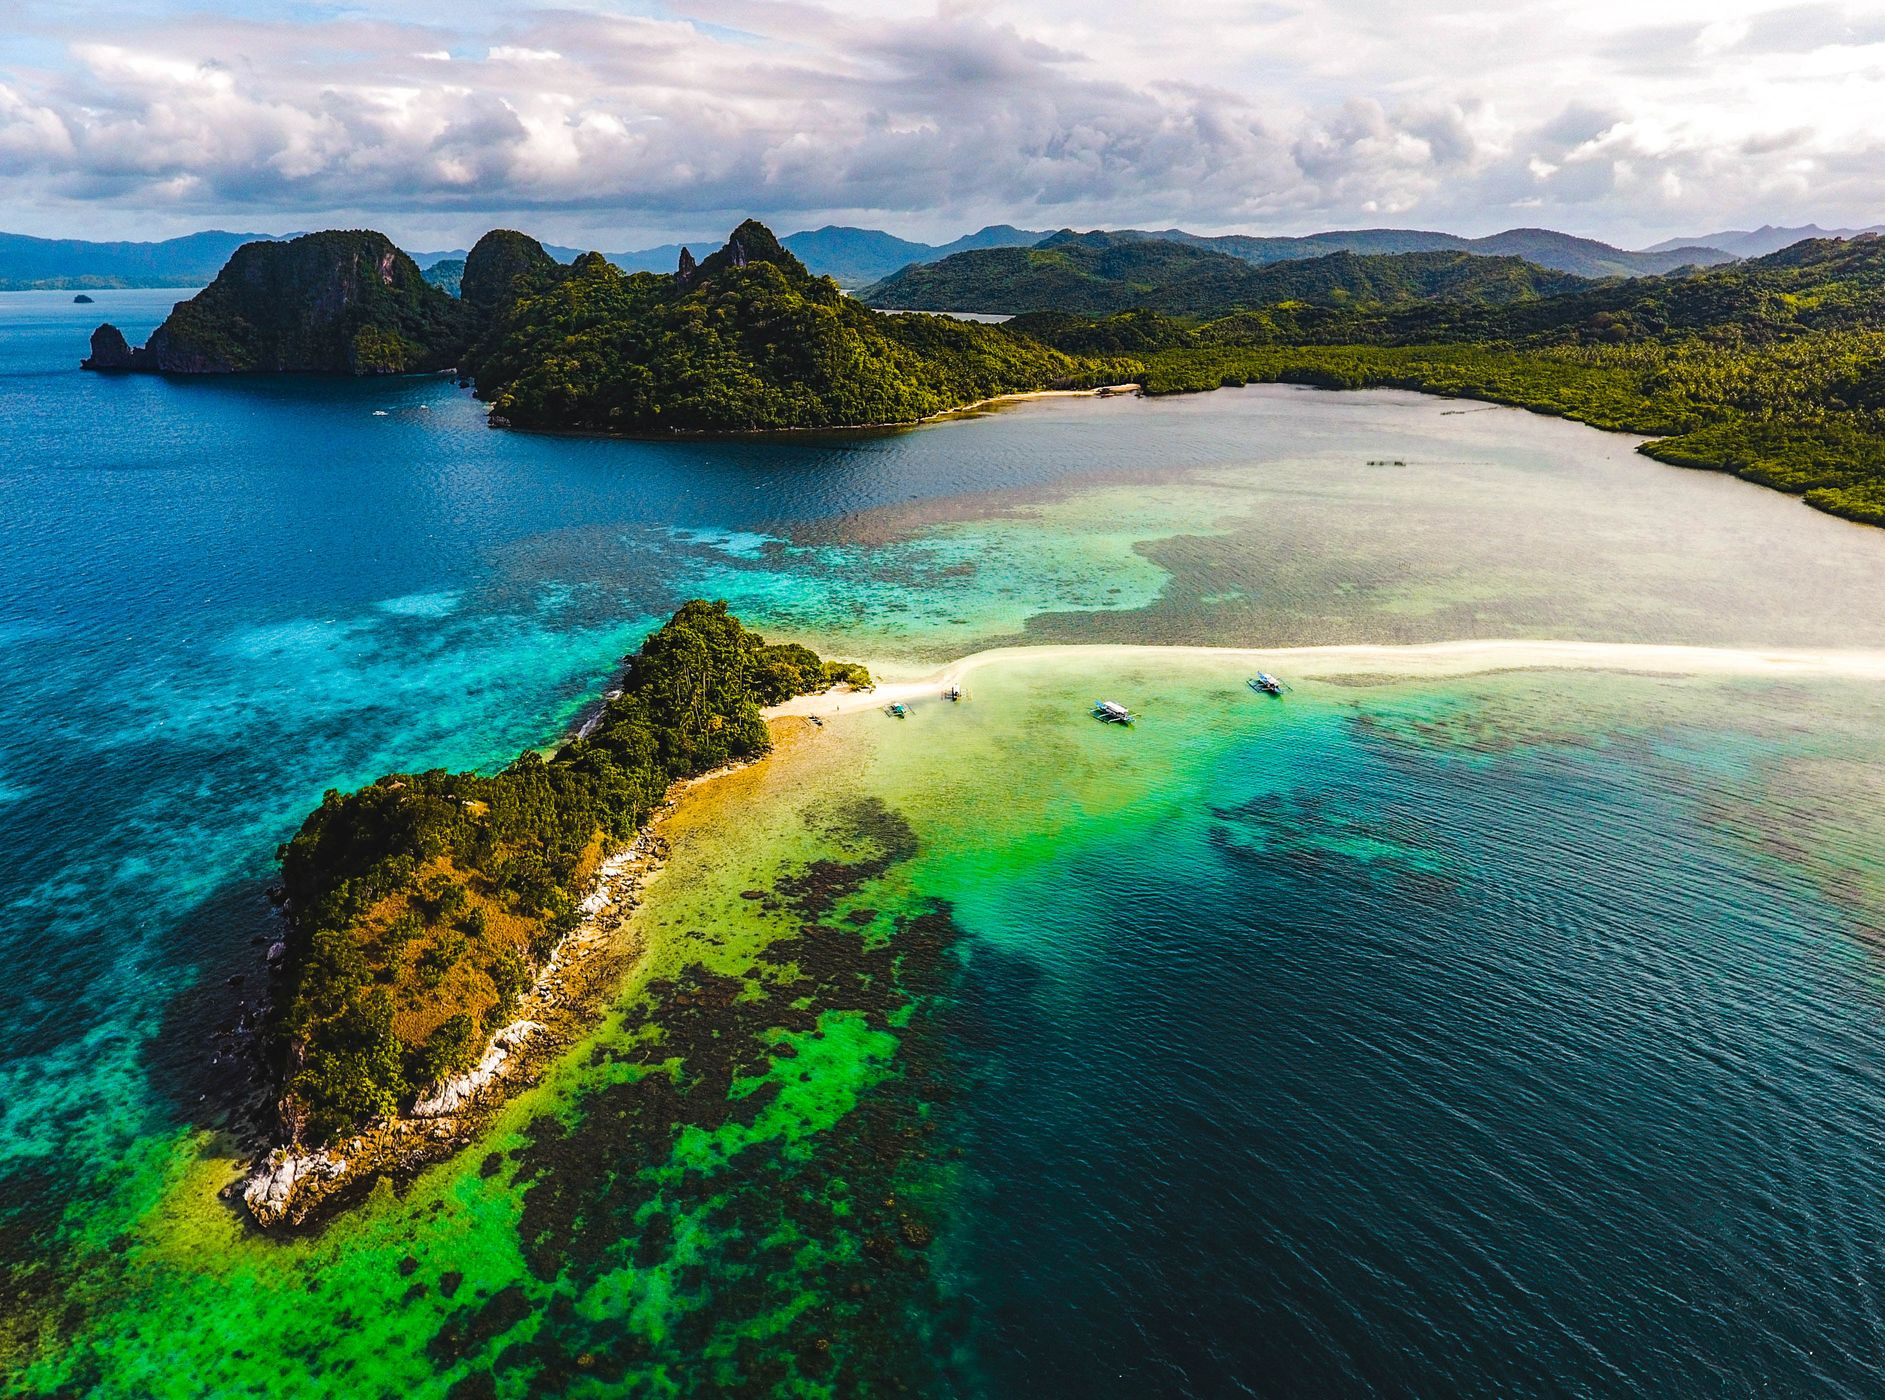 Aerial view of a small island connected to the mainland by a shining white sand bar in El Nido, Palawan, Philippines